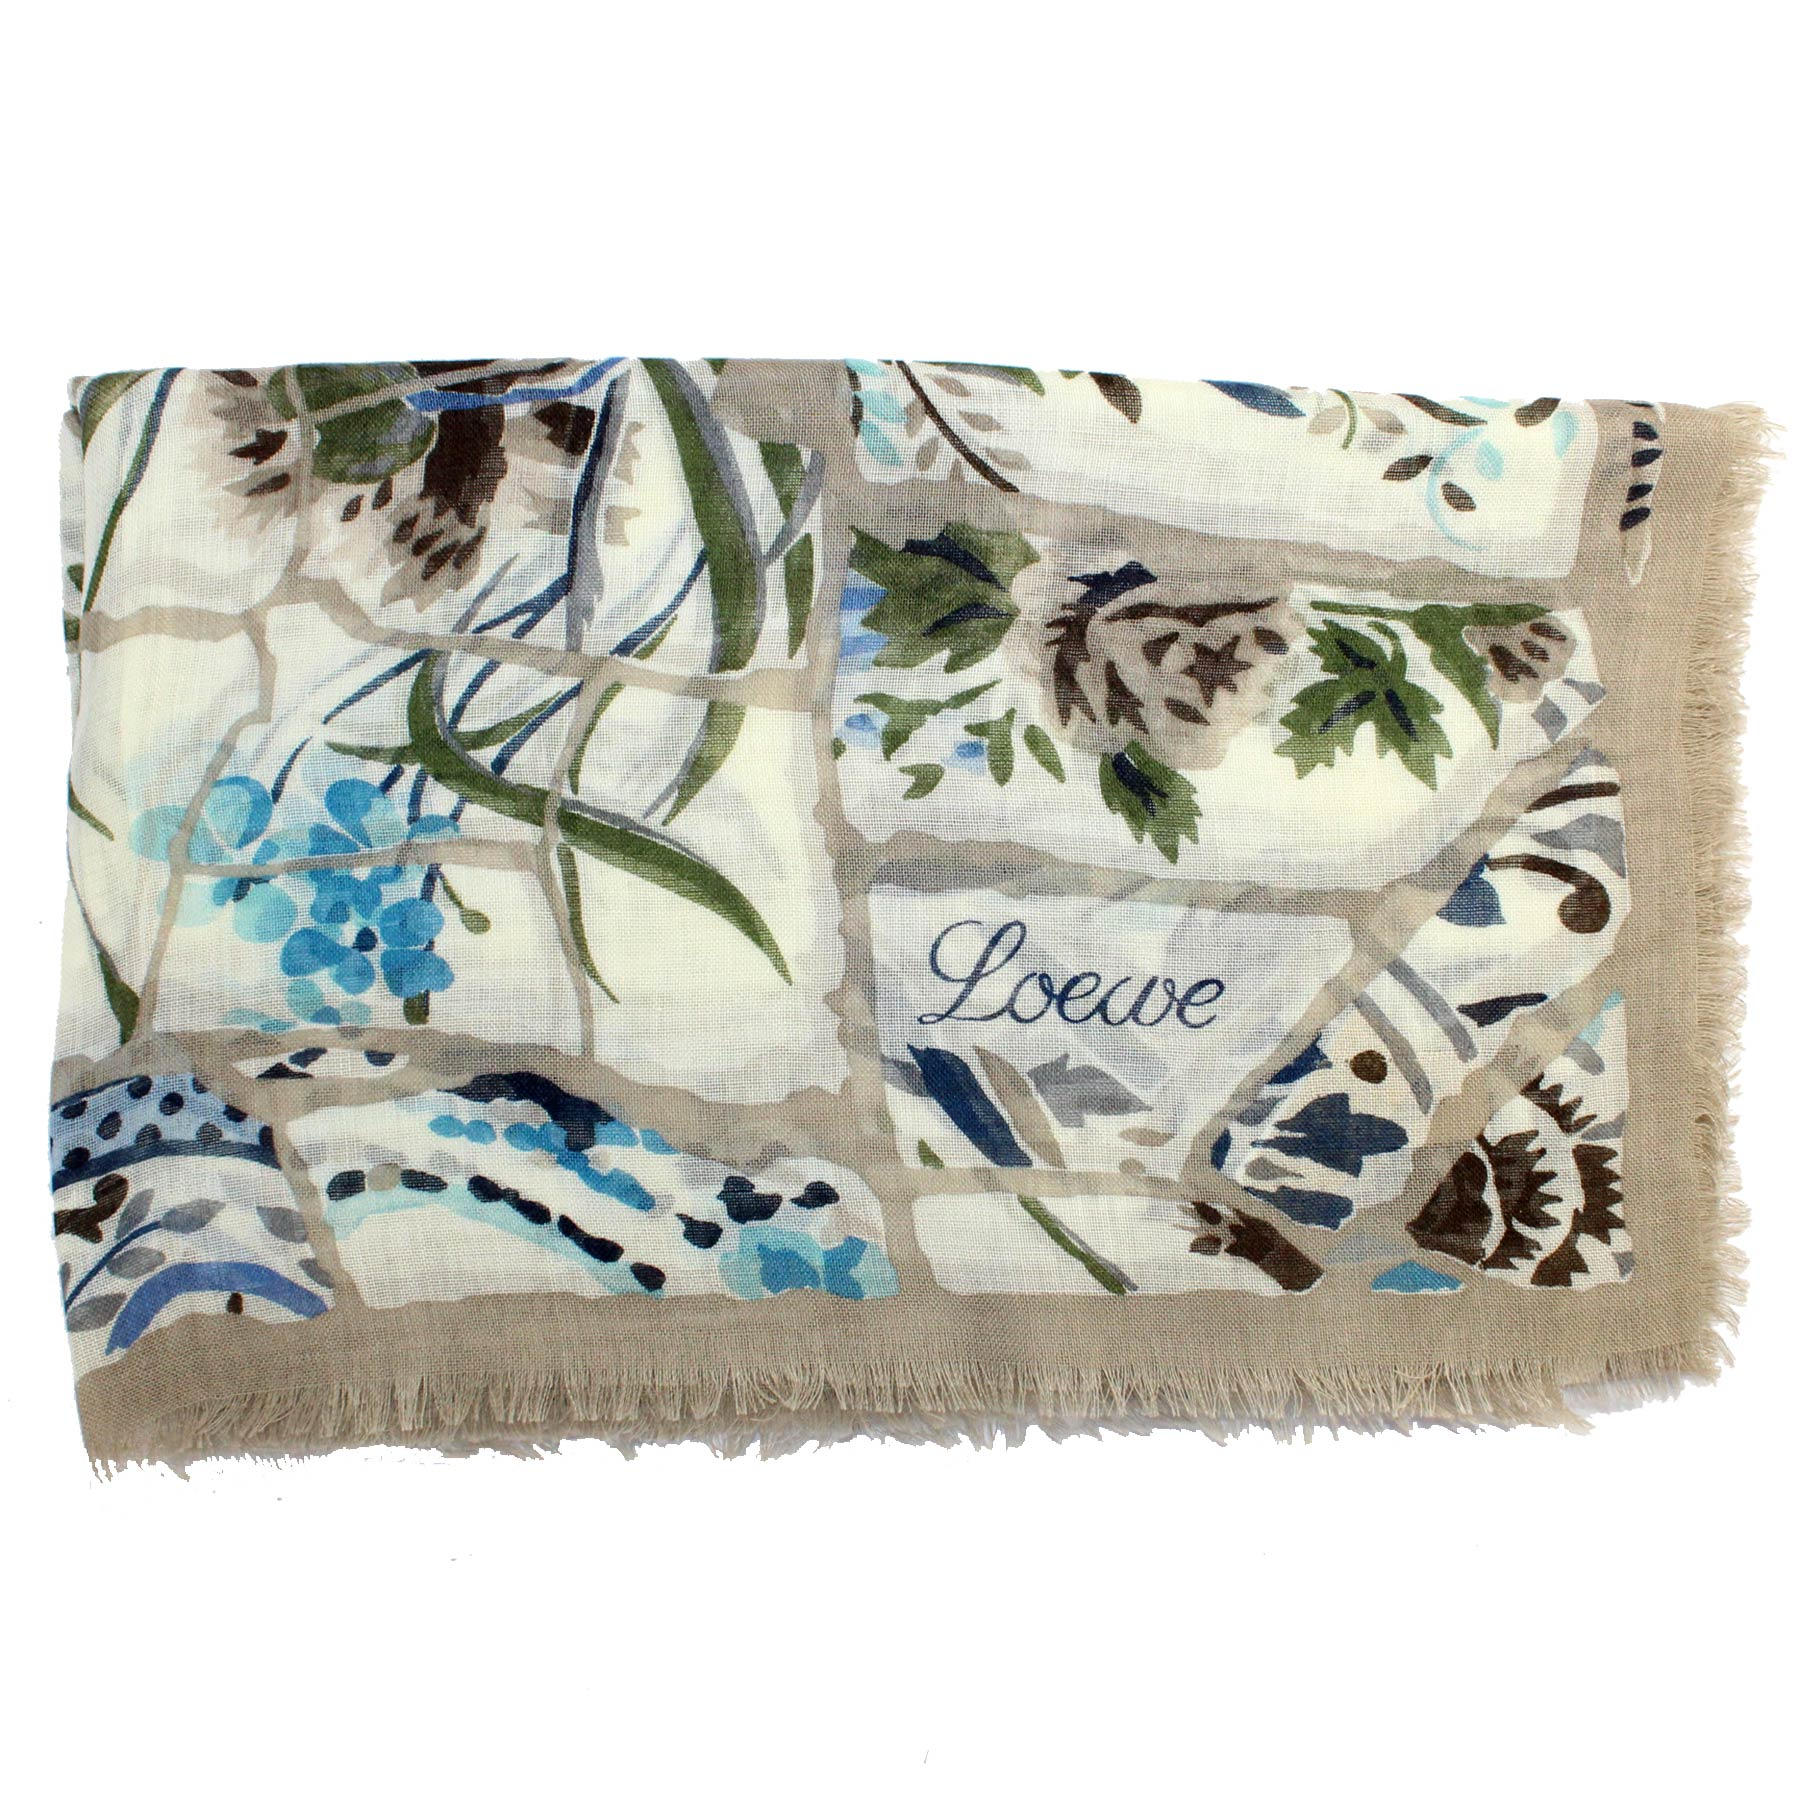 Loewe Scarf White Taupe Blue Green